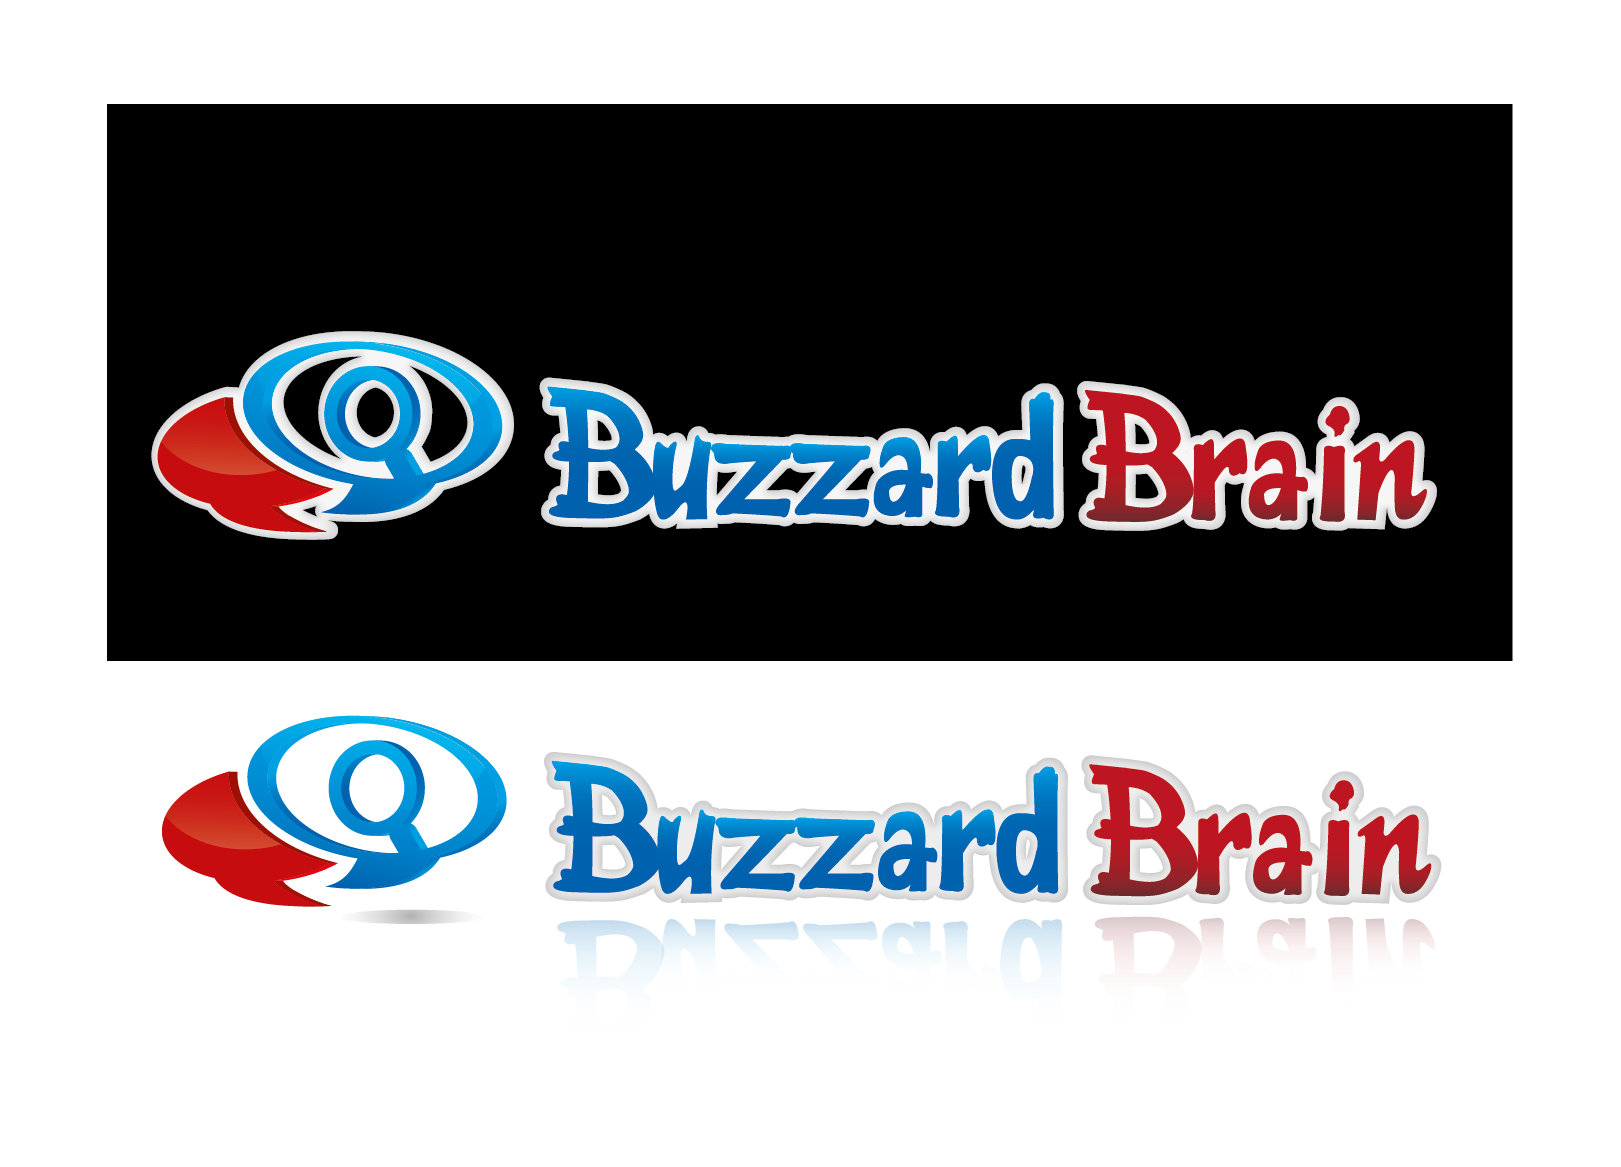 Logo Design by 354studio - Entry No. 85 in the Logo Design Contest Buzzard Brain Logo Design.